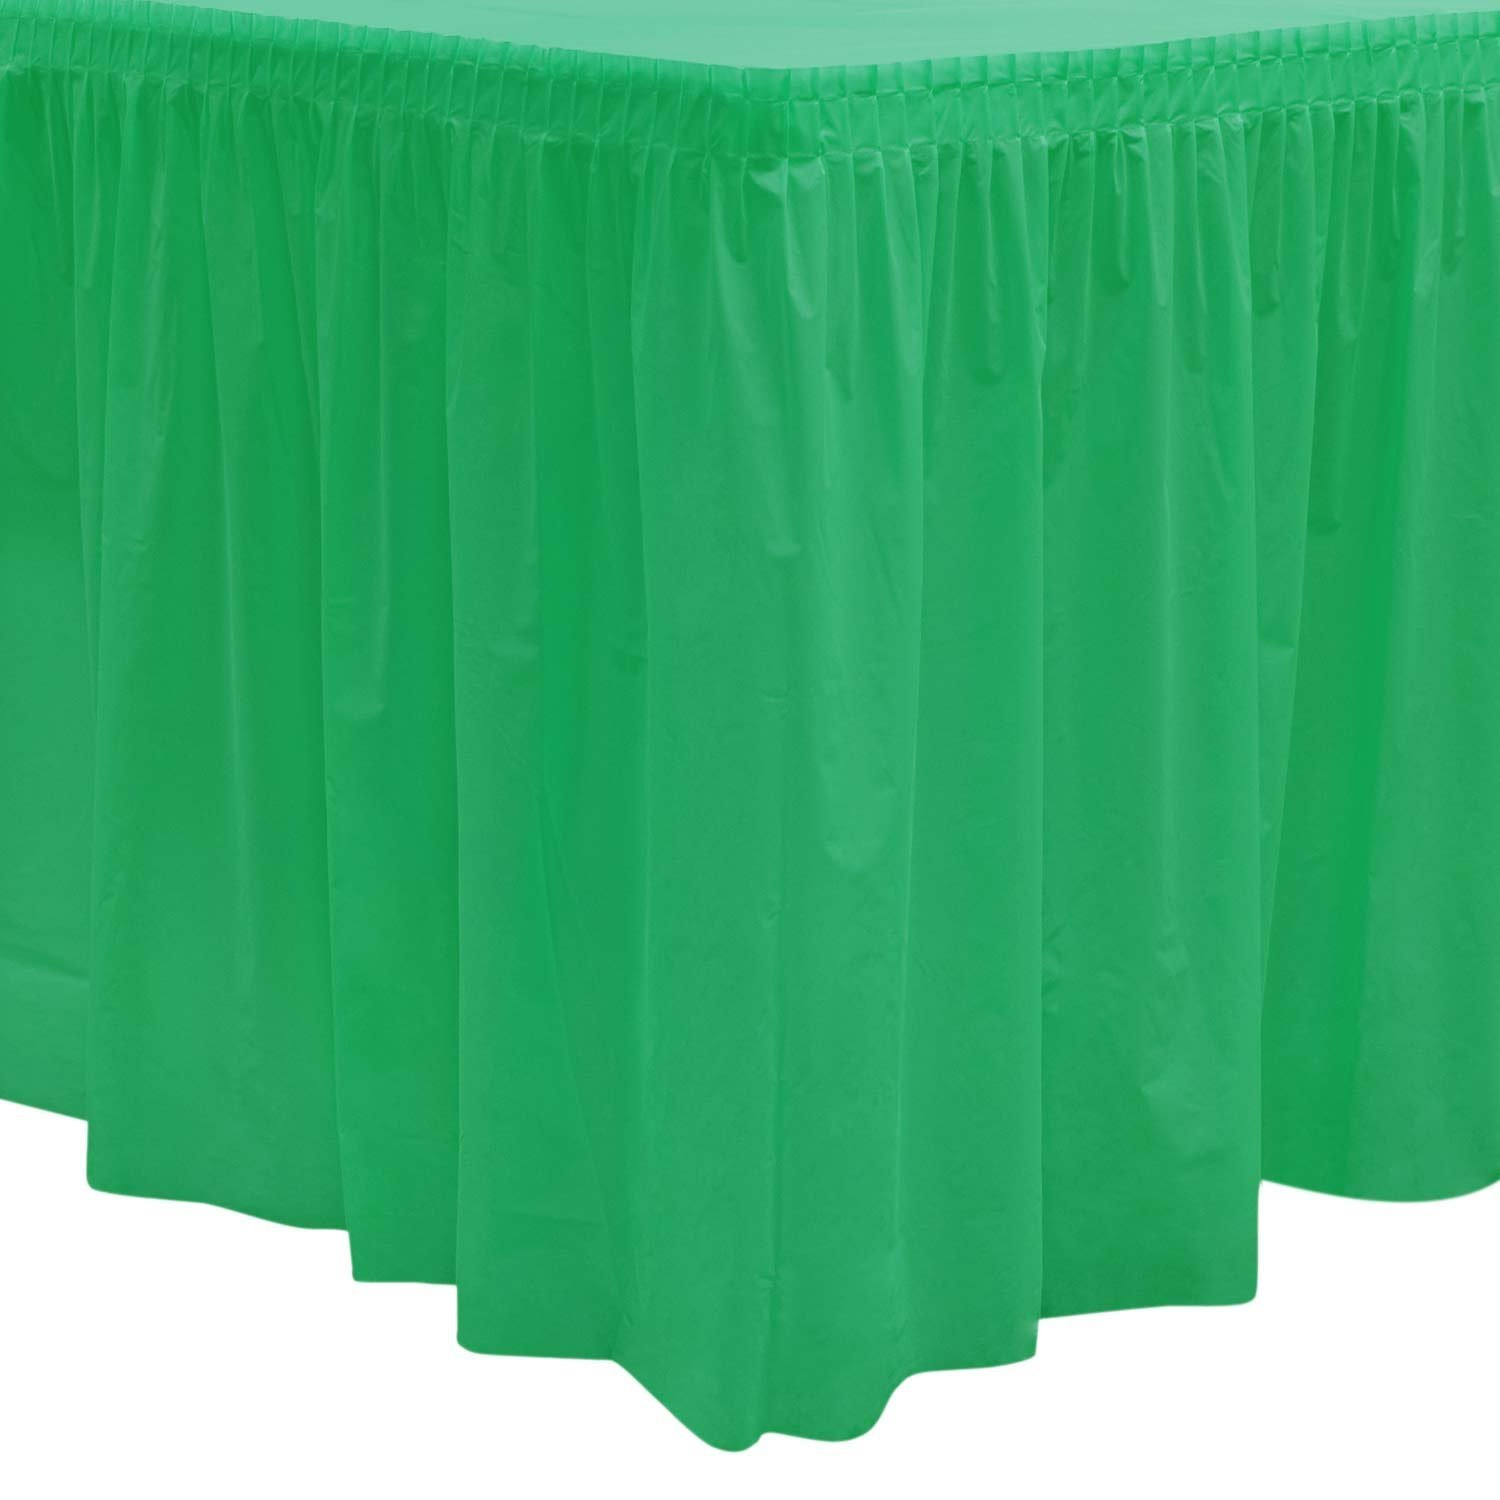 Party Essentials 529 Plastic Table Skirt, 168'' Length x 29'' Width, Kelly Green (Case of 6) by Party Essentials